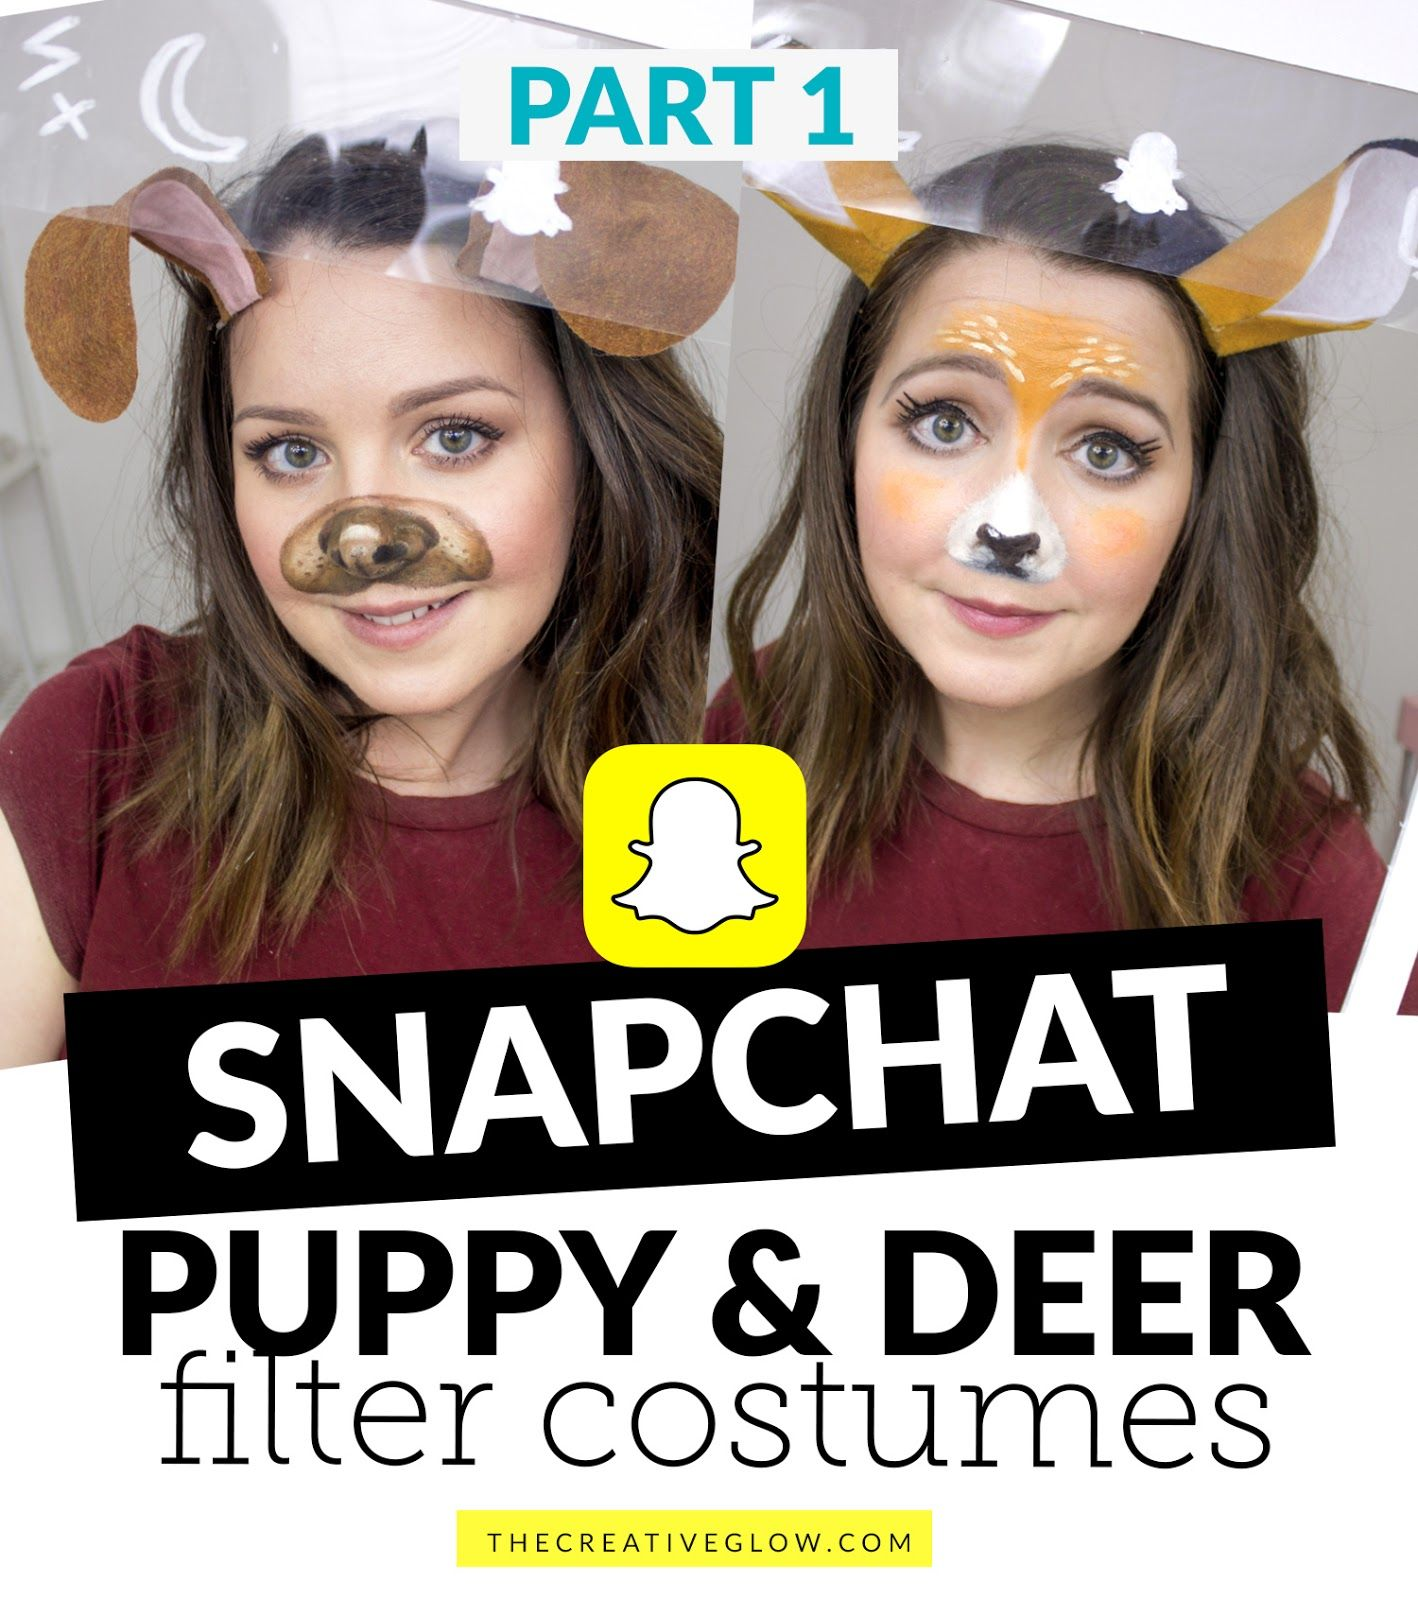 SnapChat Puppy & Deer Filter Costumes in 2020